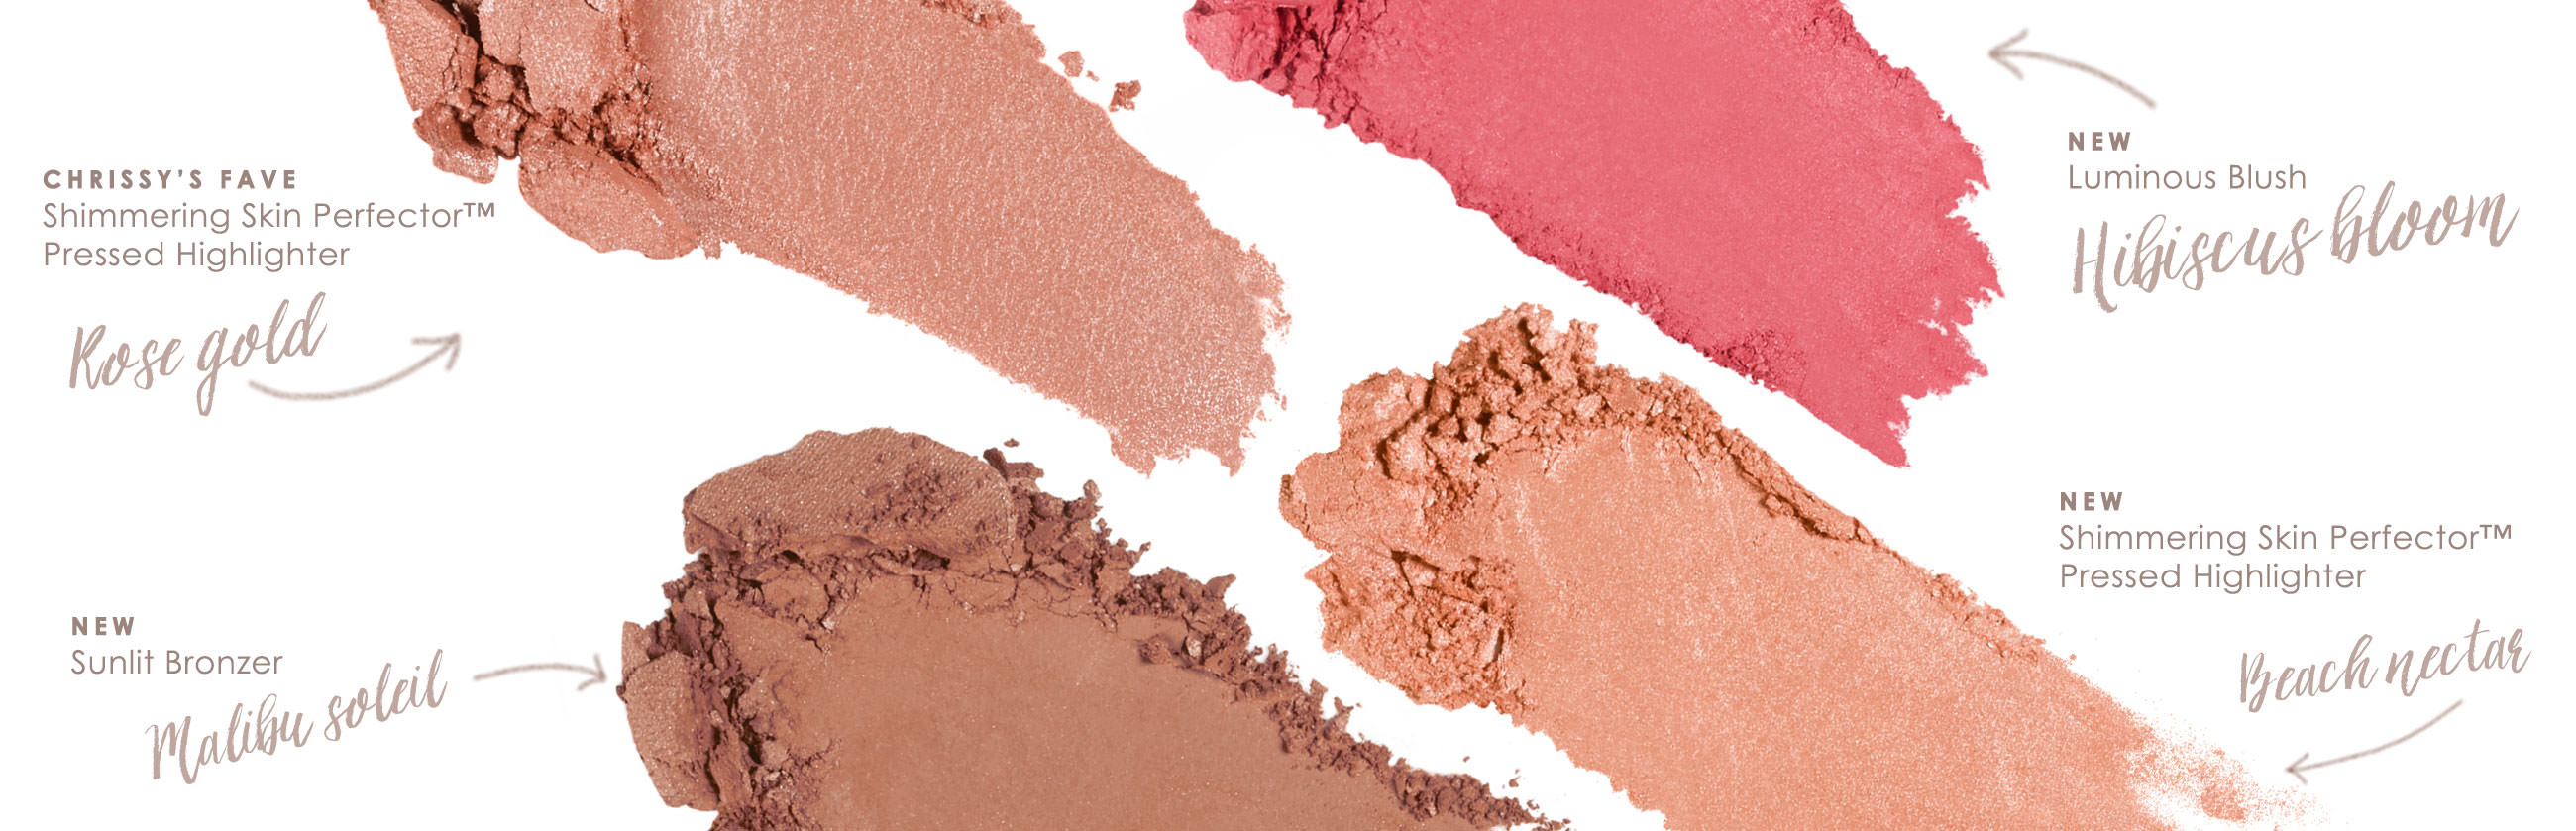 BECCA x Chrissy Glow Face Palette Colors: Rose Gold, Hibiscus Bloom, Malibu Soleil, and Beach Nectar.